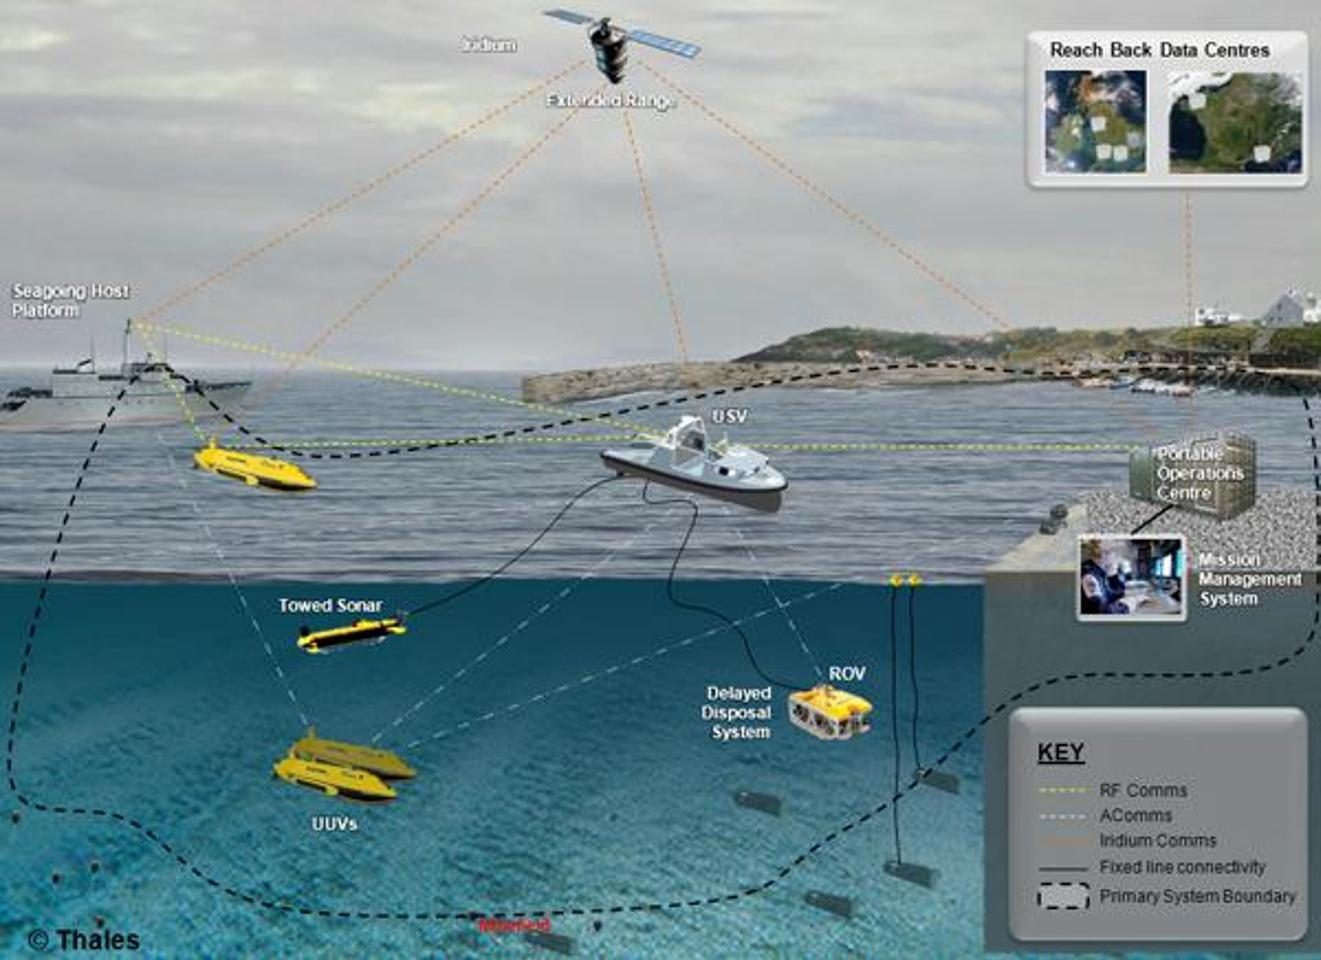 Thales sees mine hunting in the future as using fleets of robotic vessels